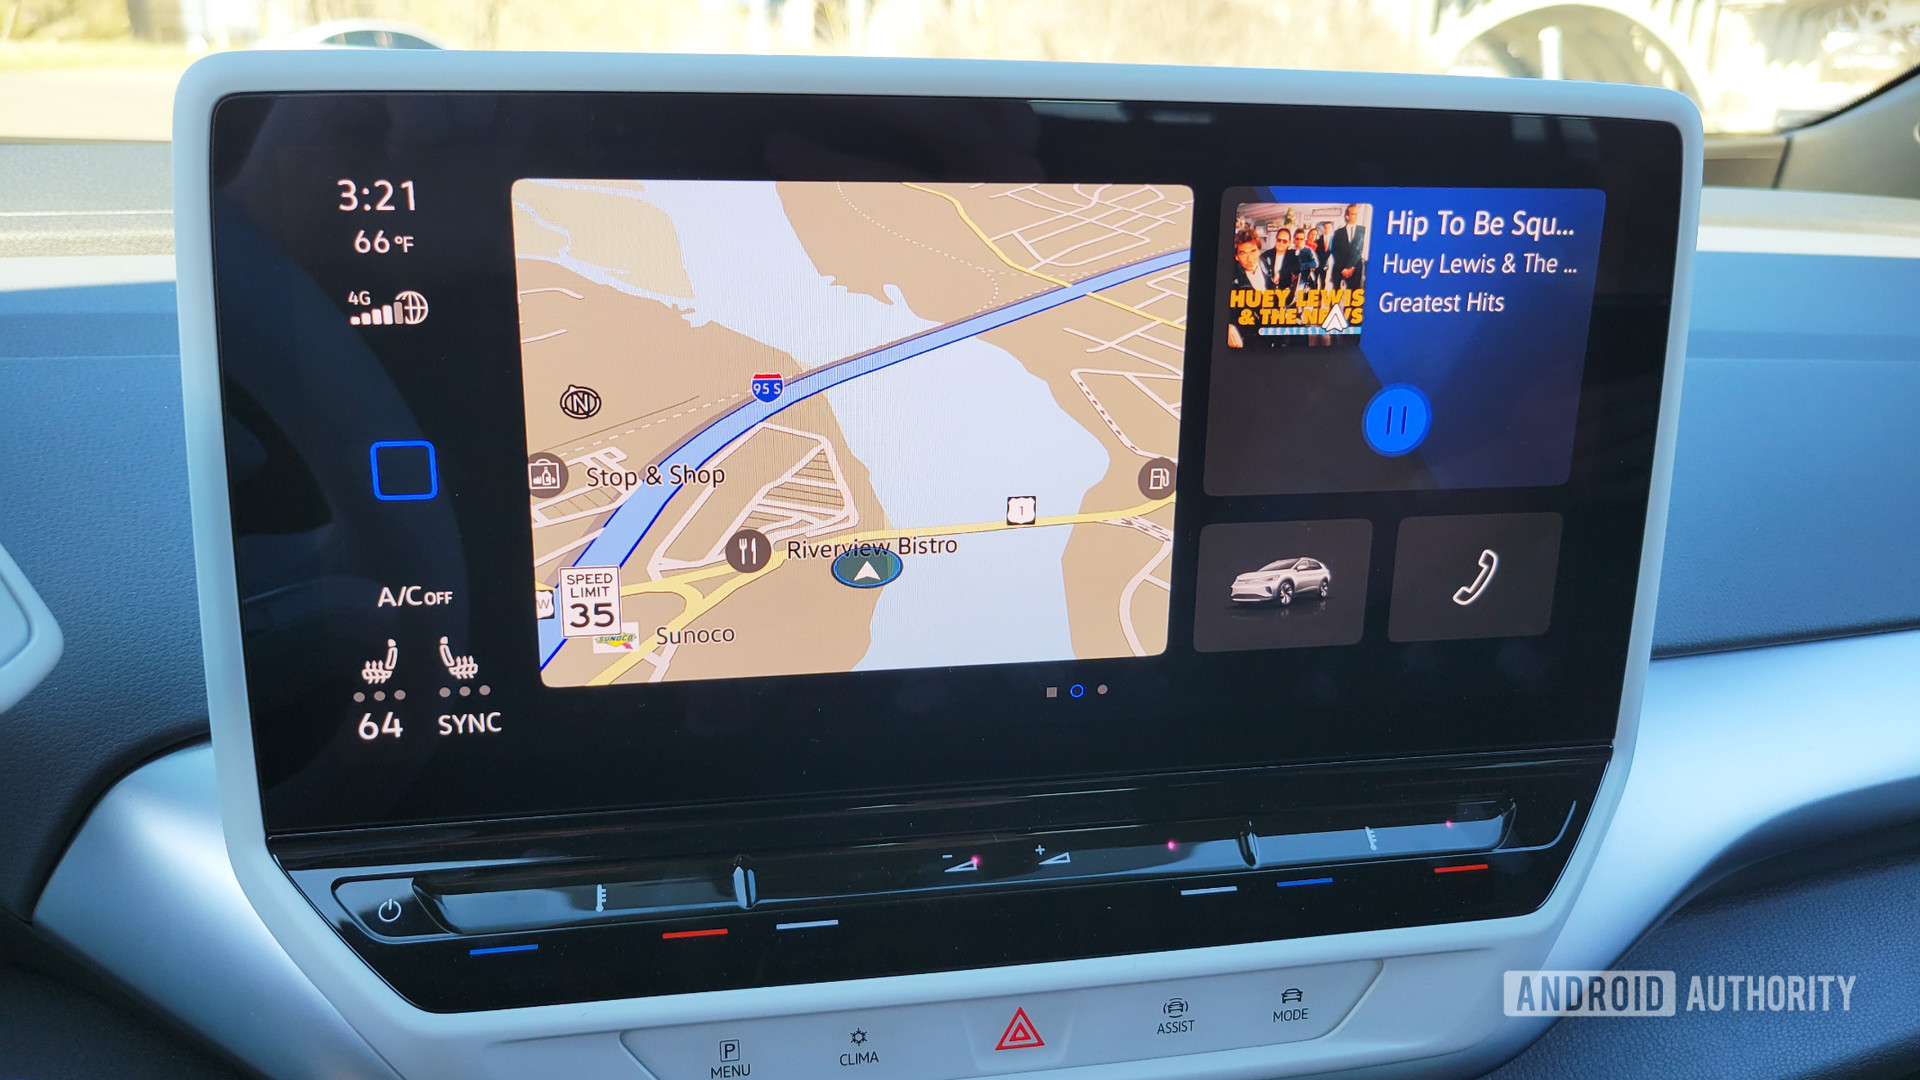 Volkswagen ID.4 Infotainment without Android Auto